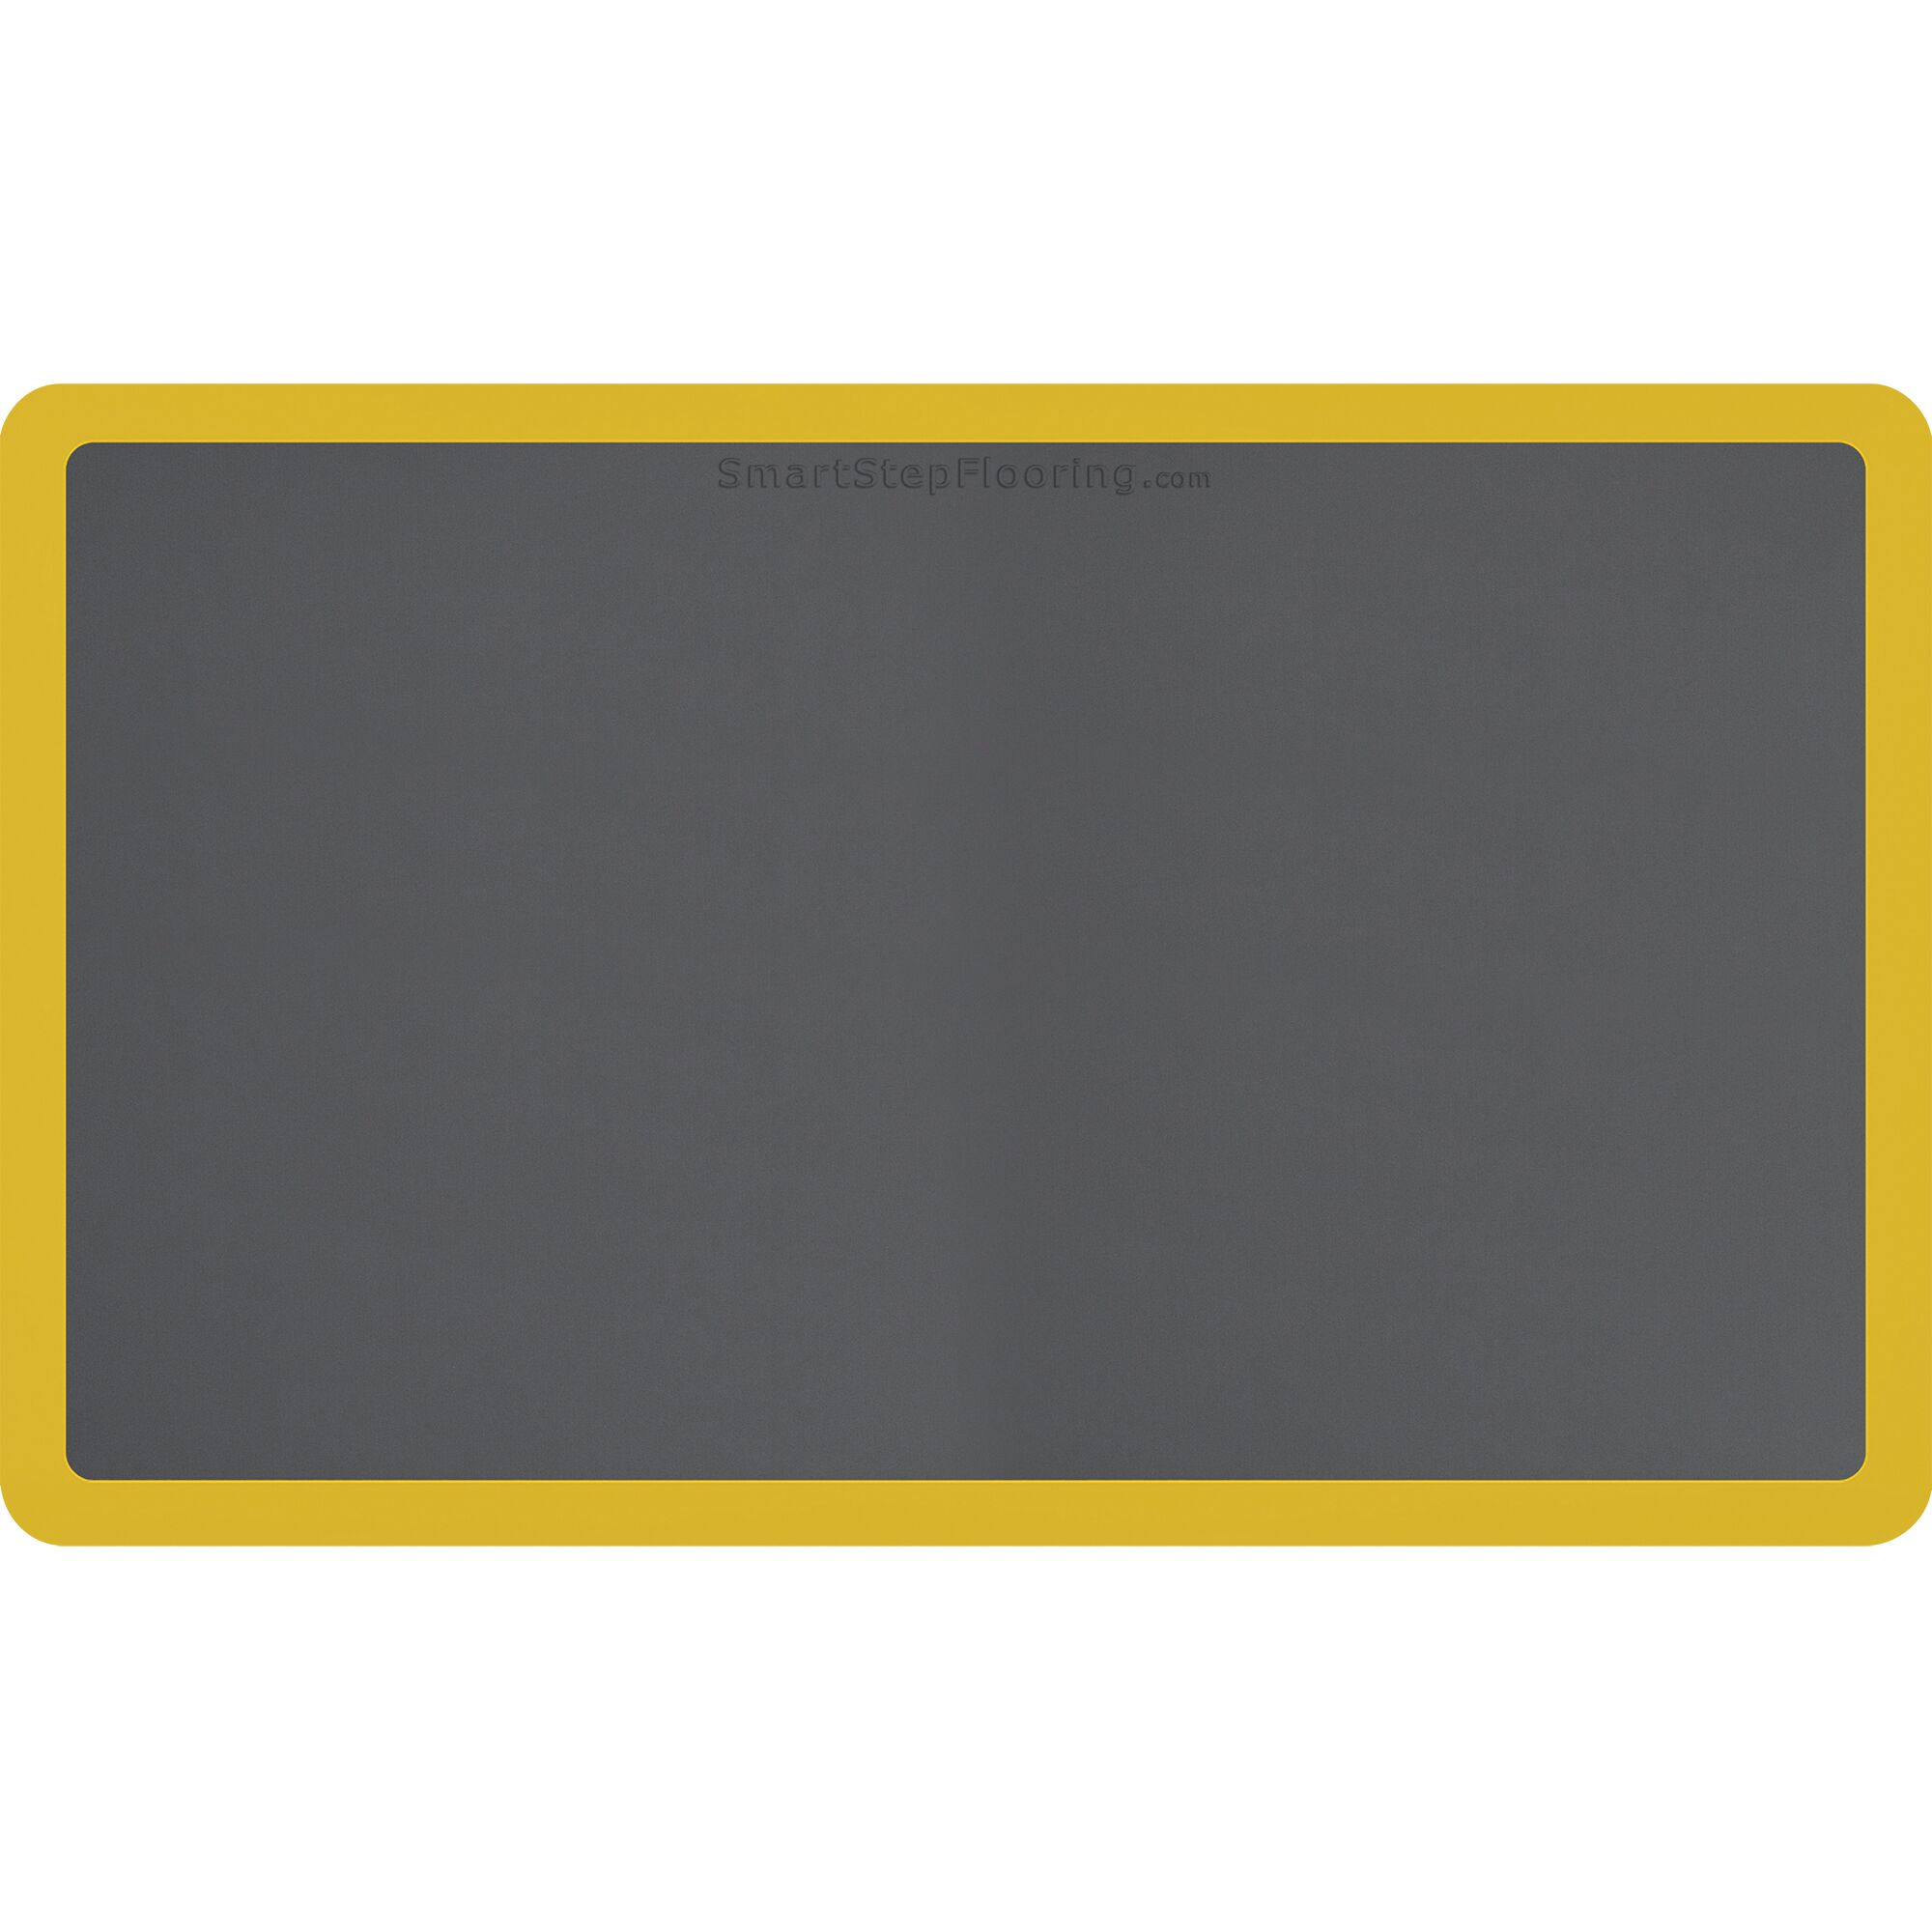 Contour Kitchen Mat Mat Size: Rectangle 5' x 3', Color: Gray/Yellow